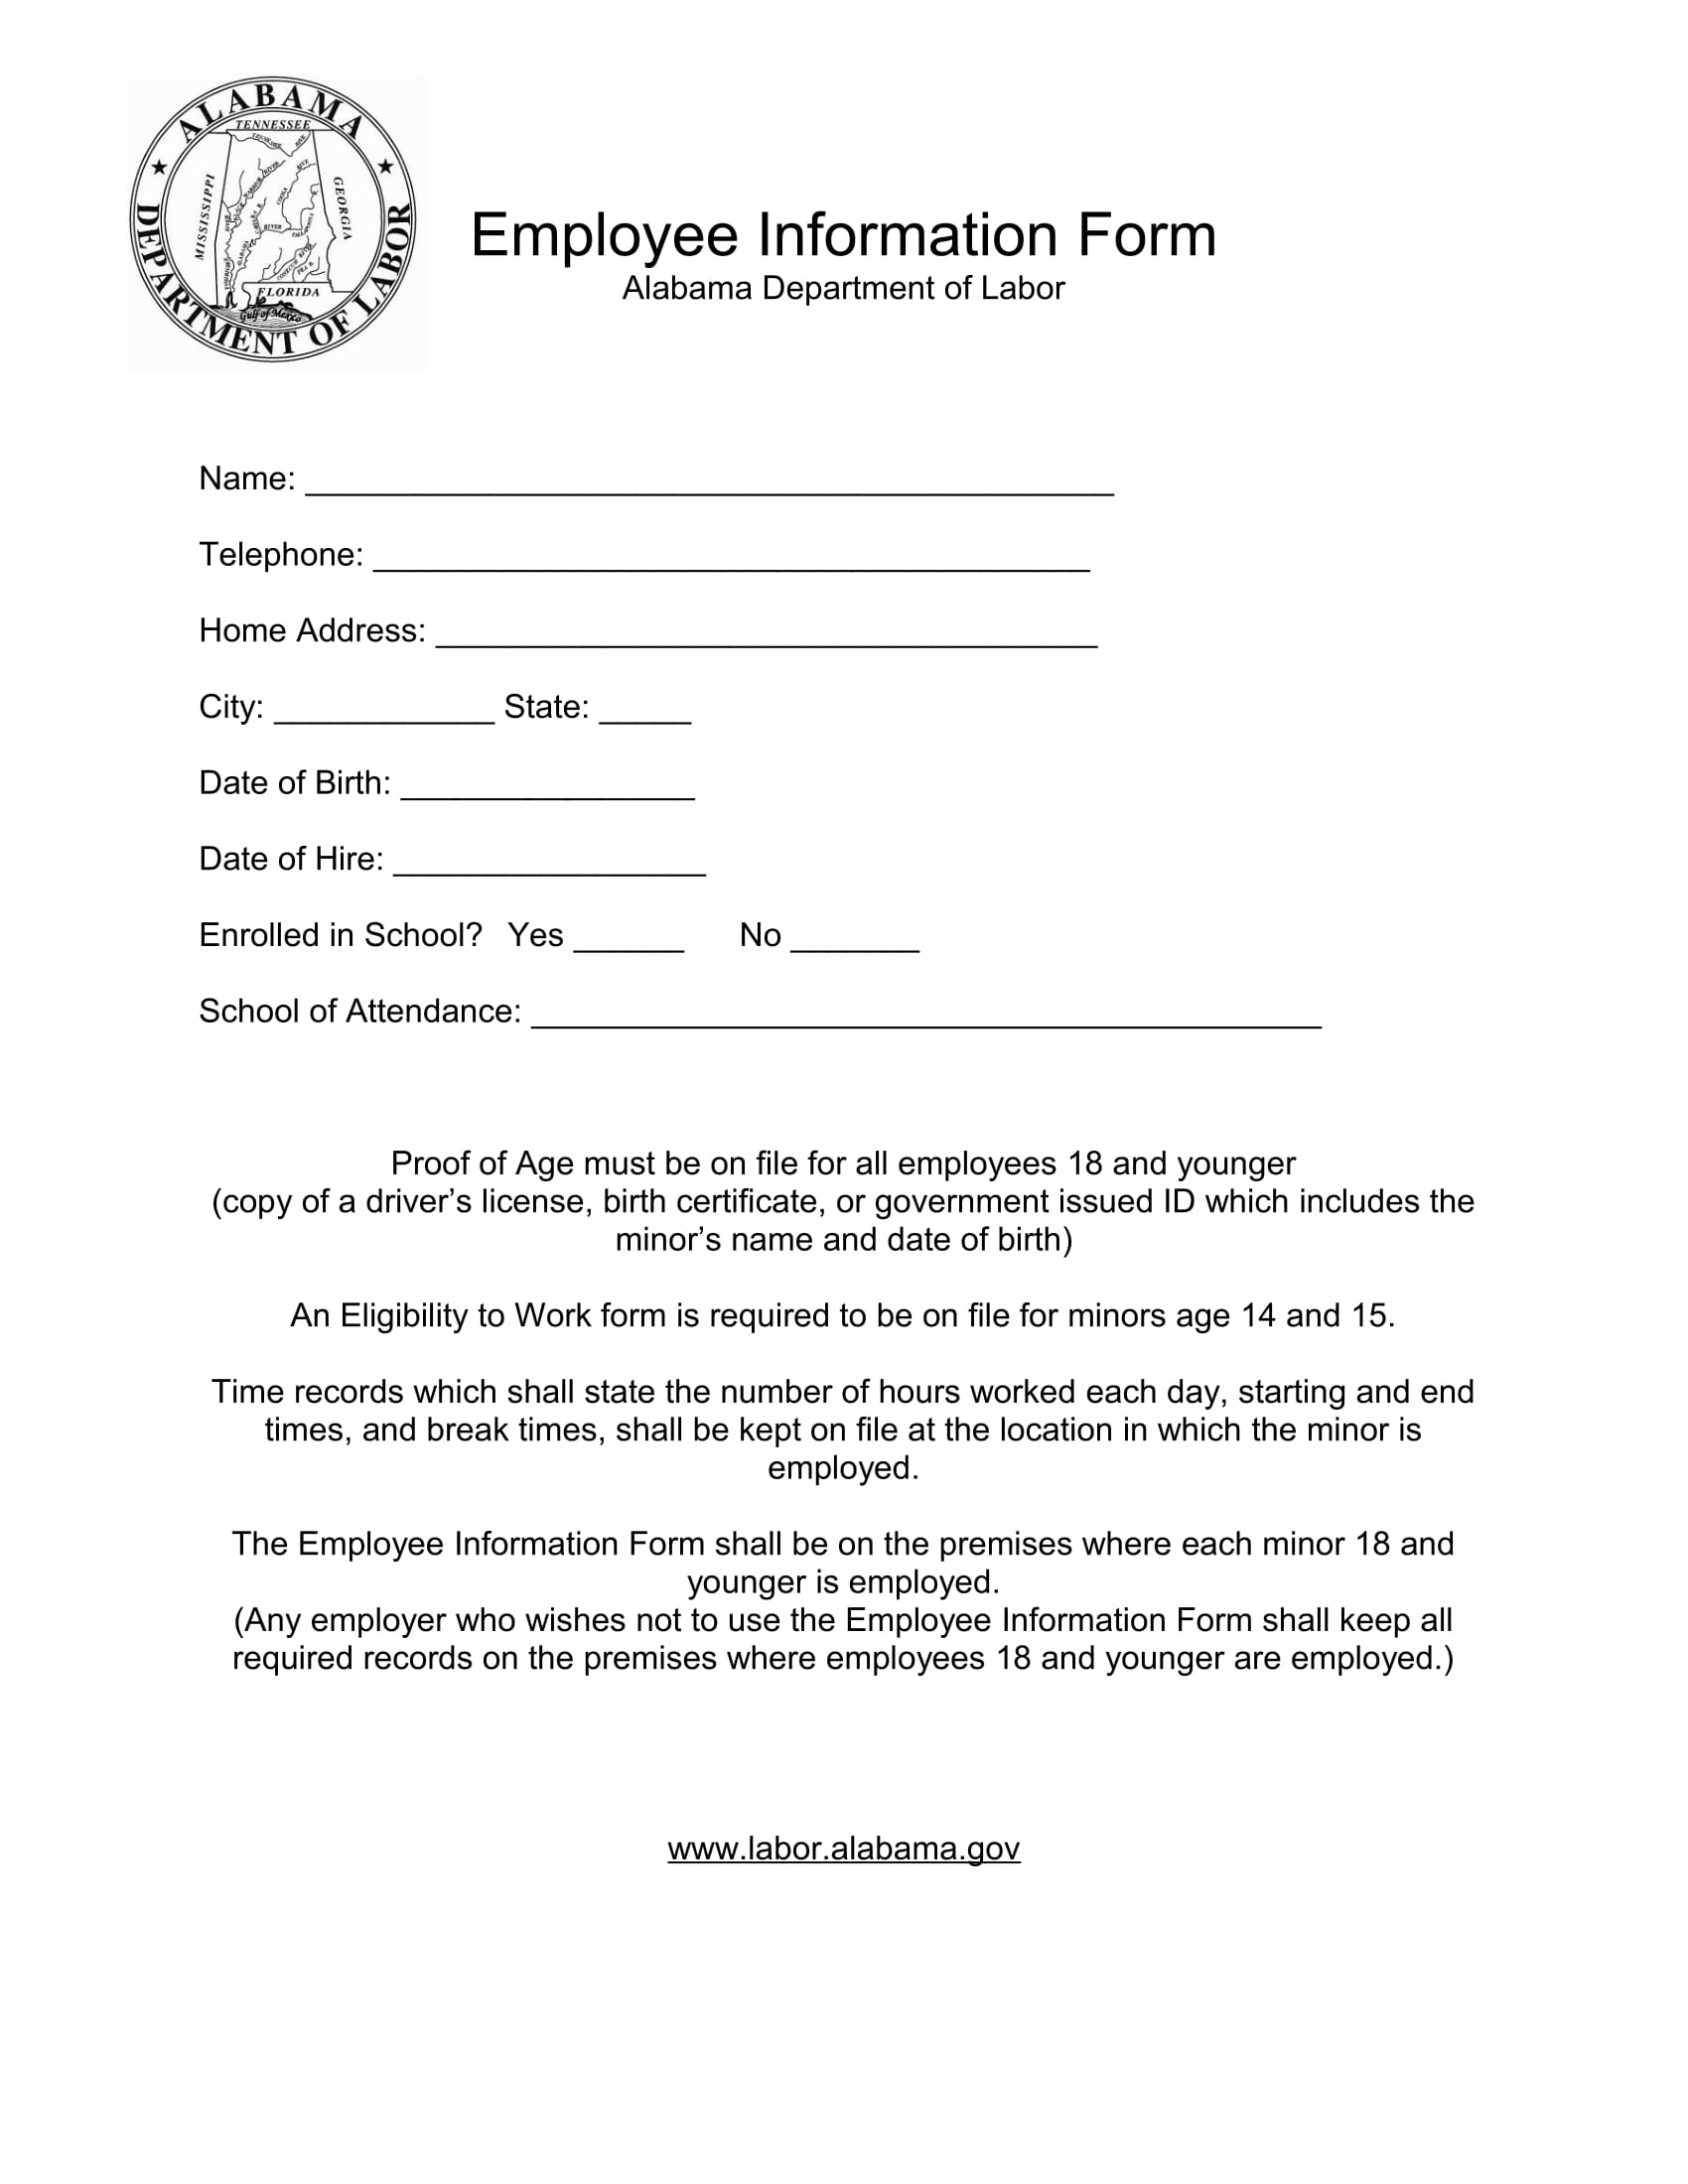 sample for employee information form 1